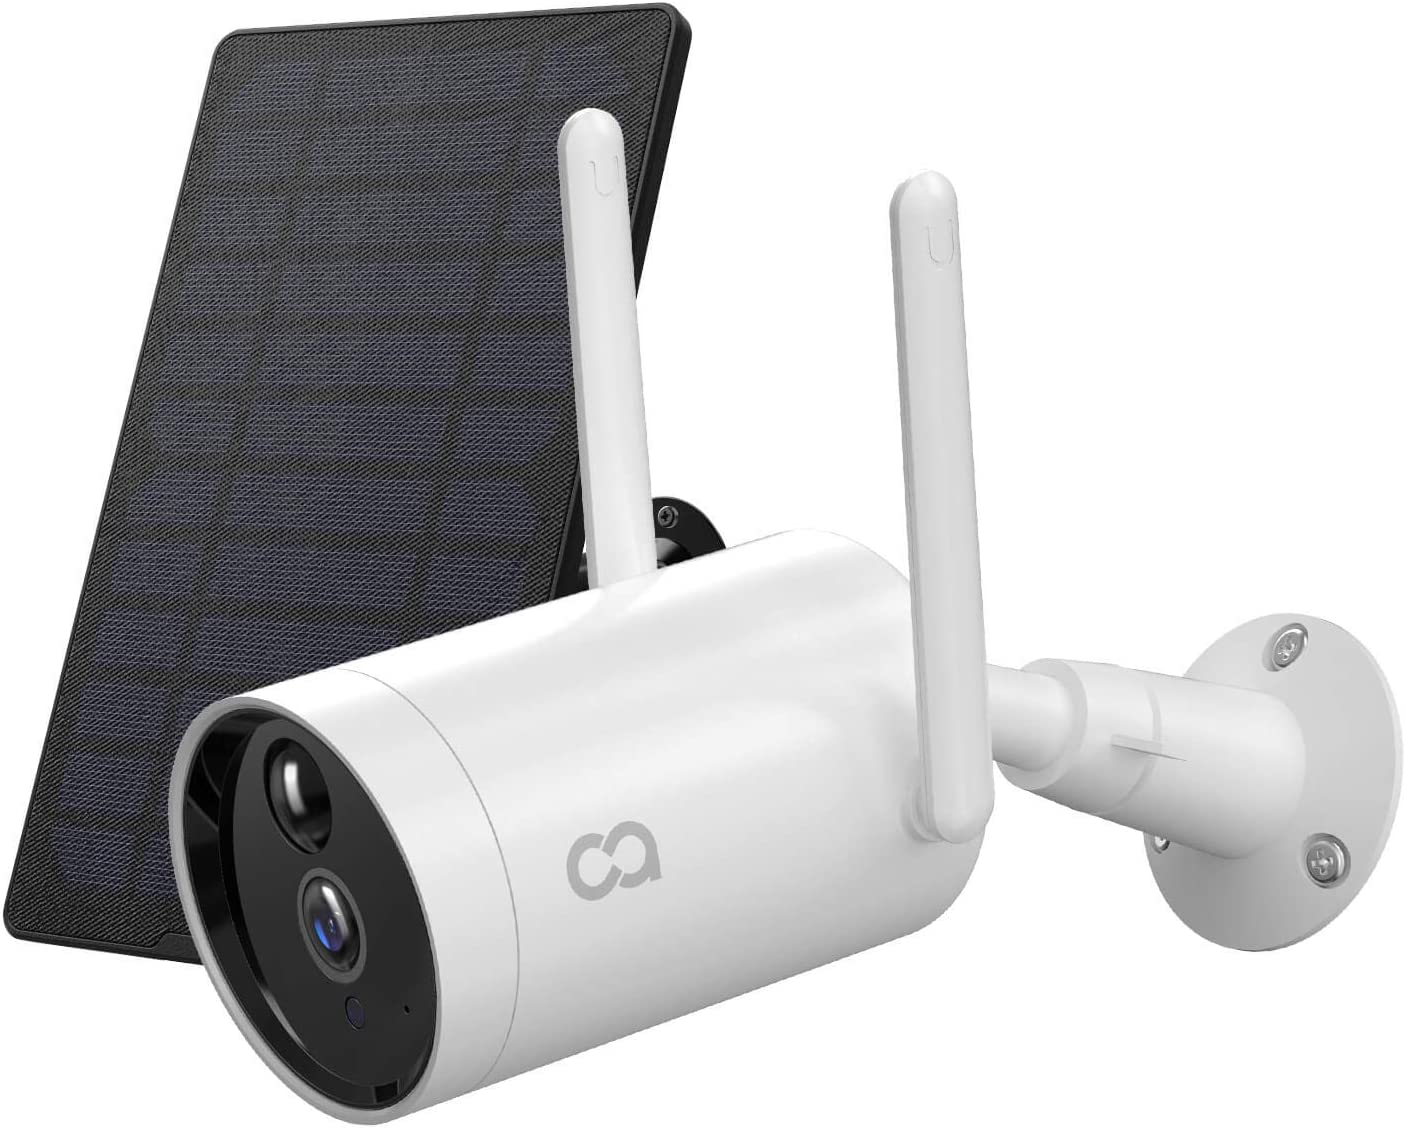 COOAU 1080P Wireless Outdoor Security Camera $79.99 Coupon